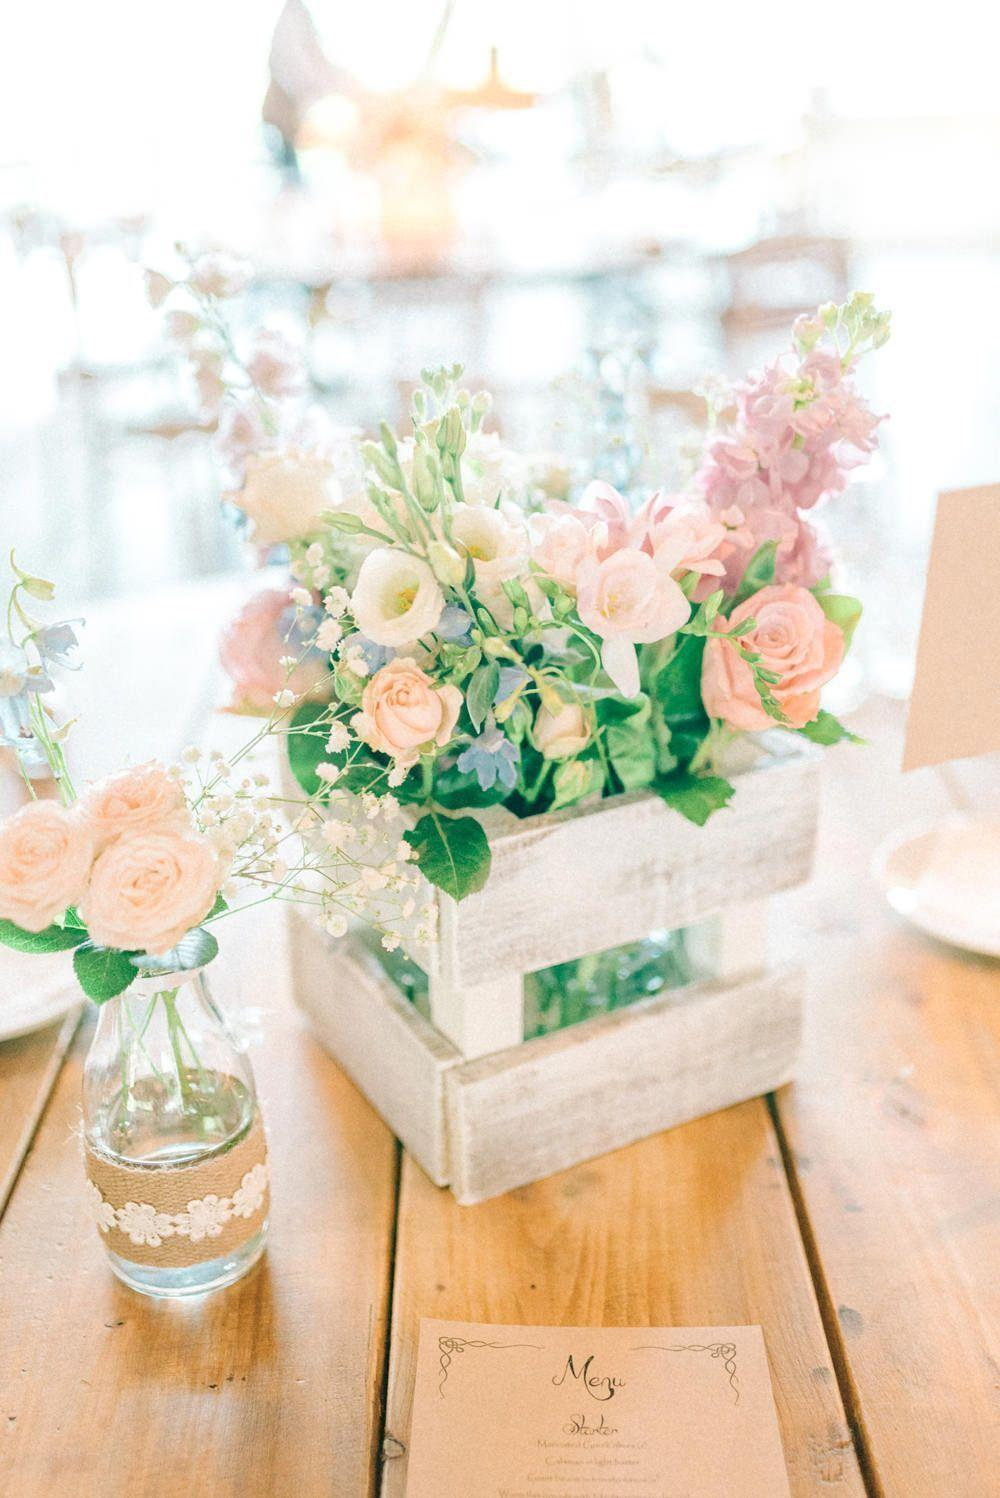 Wedding arrangements: 70 ideas for table, flowers and decoration 34